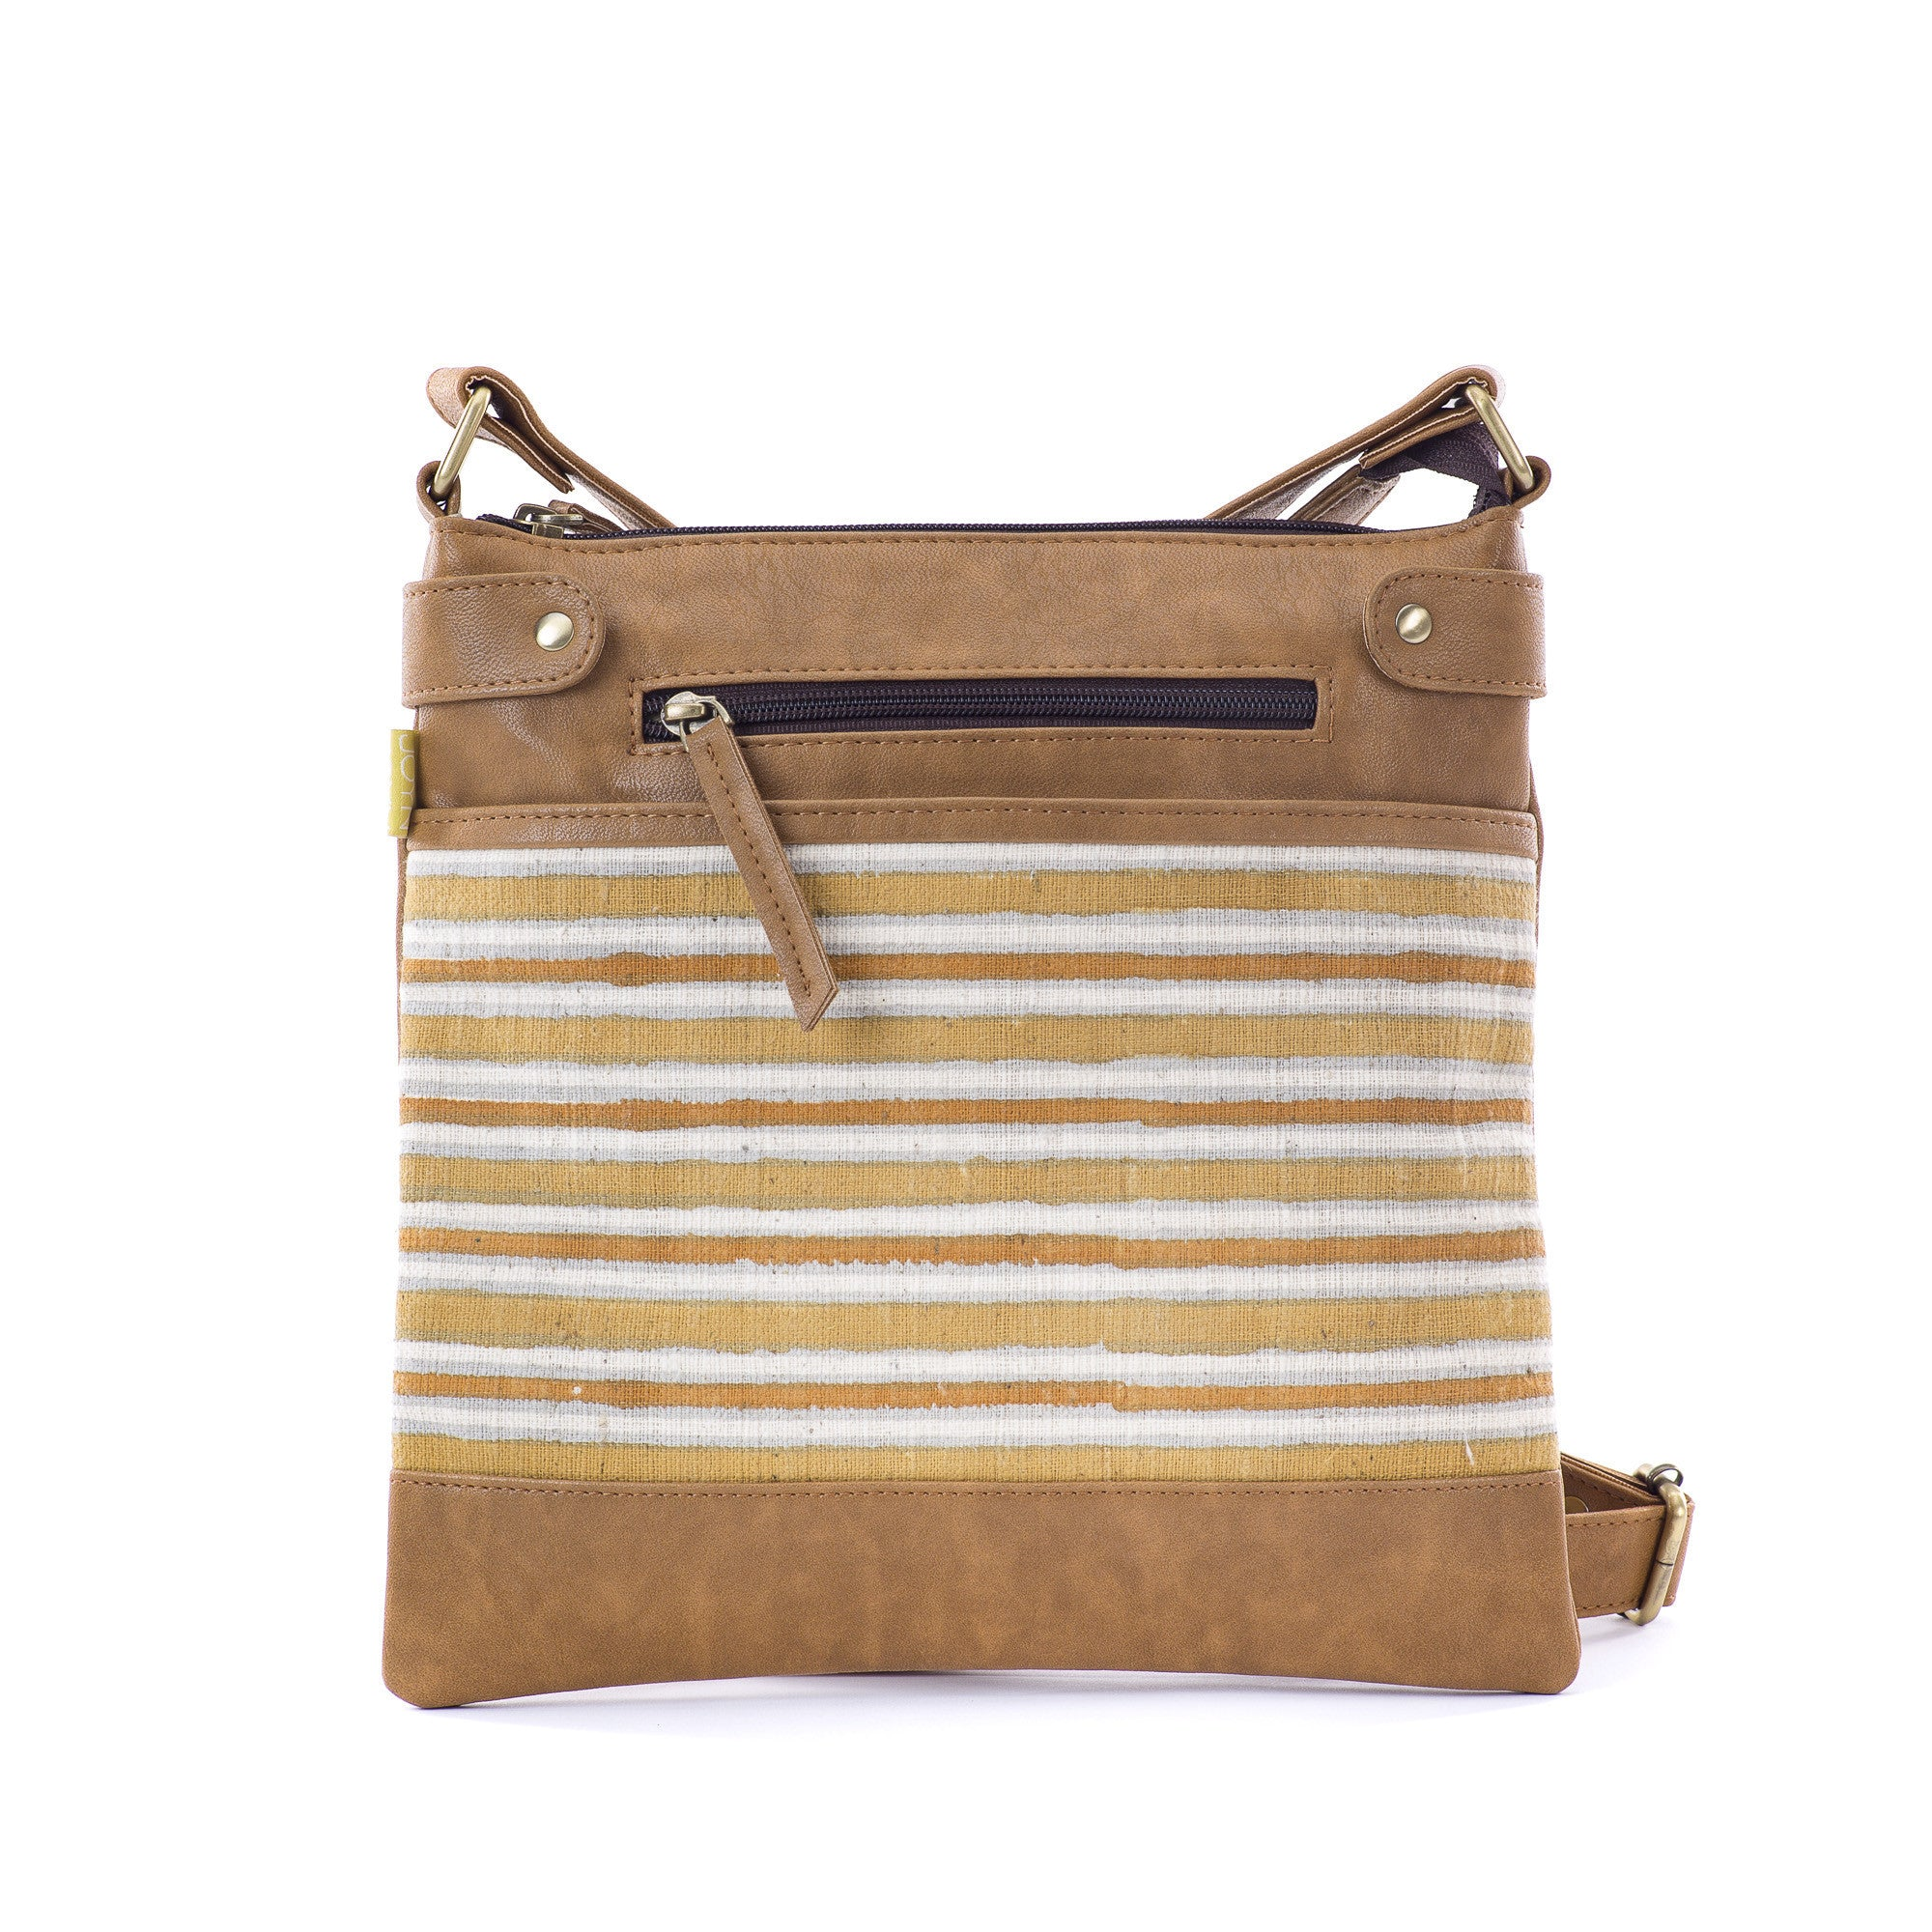 Square Satchel - Mustard Stripes